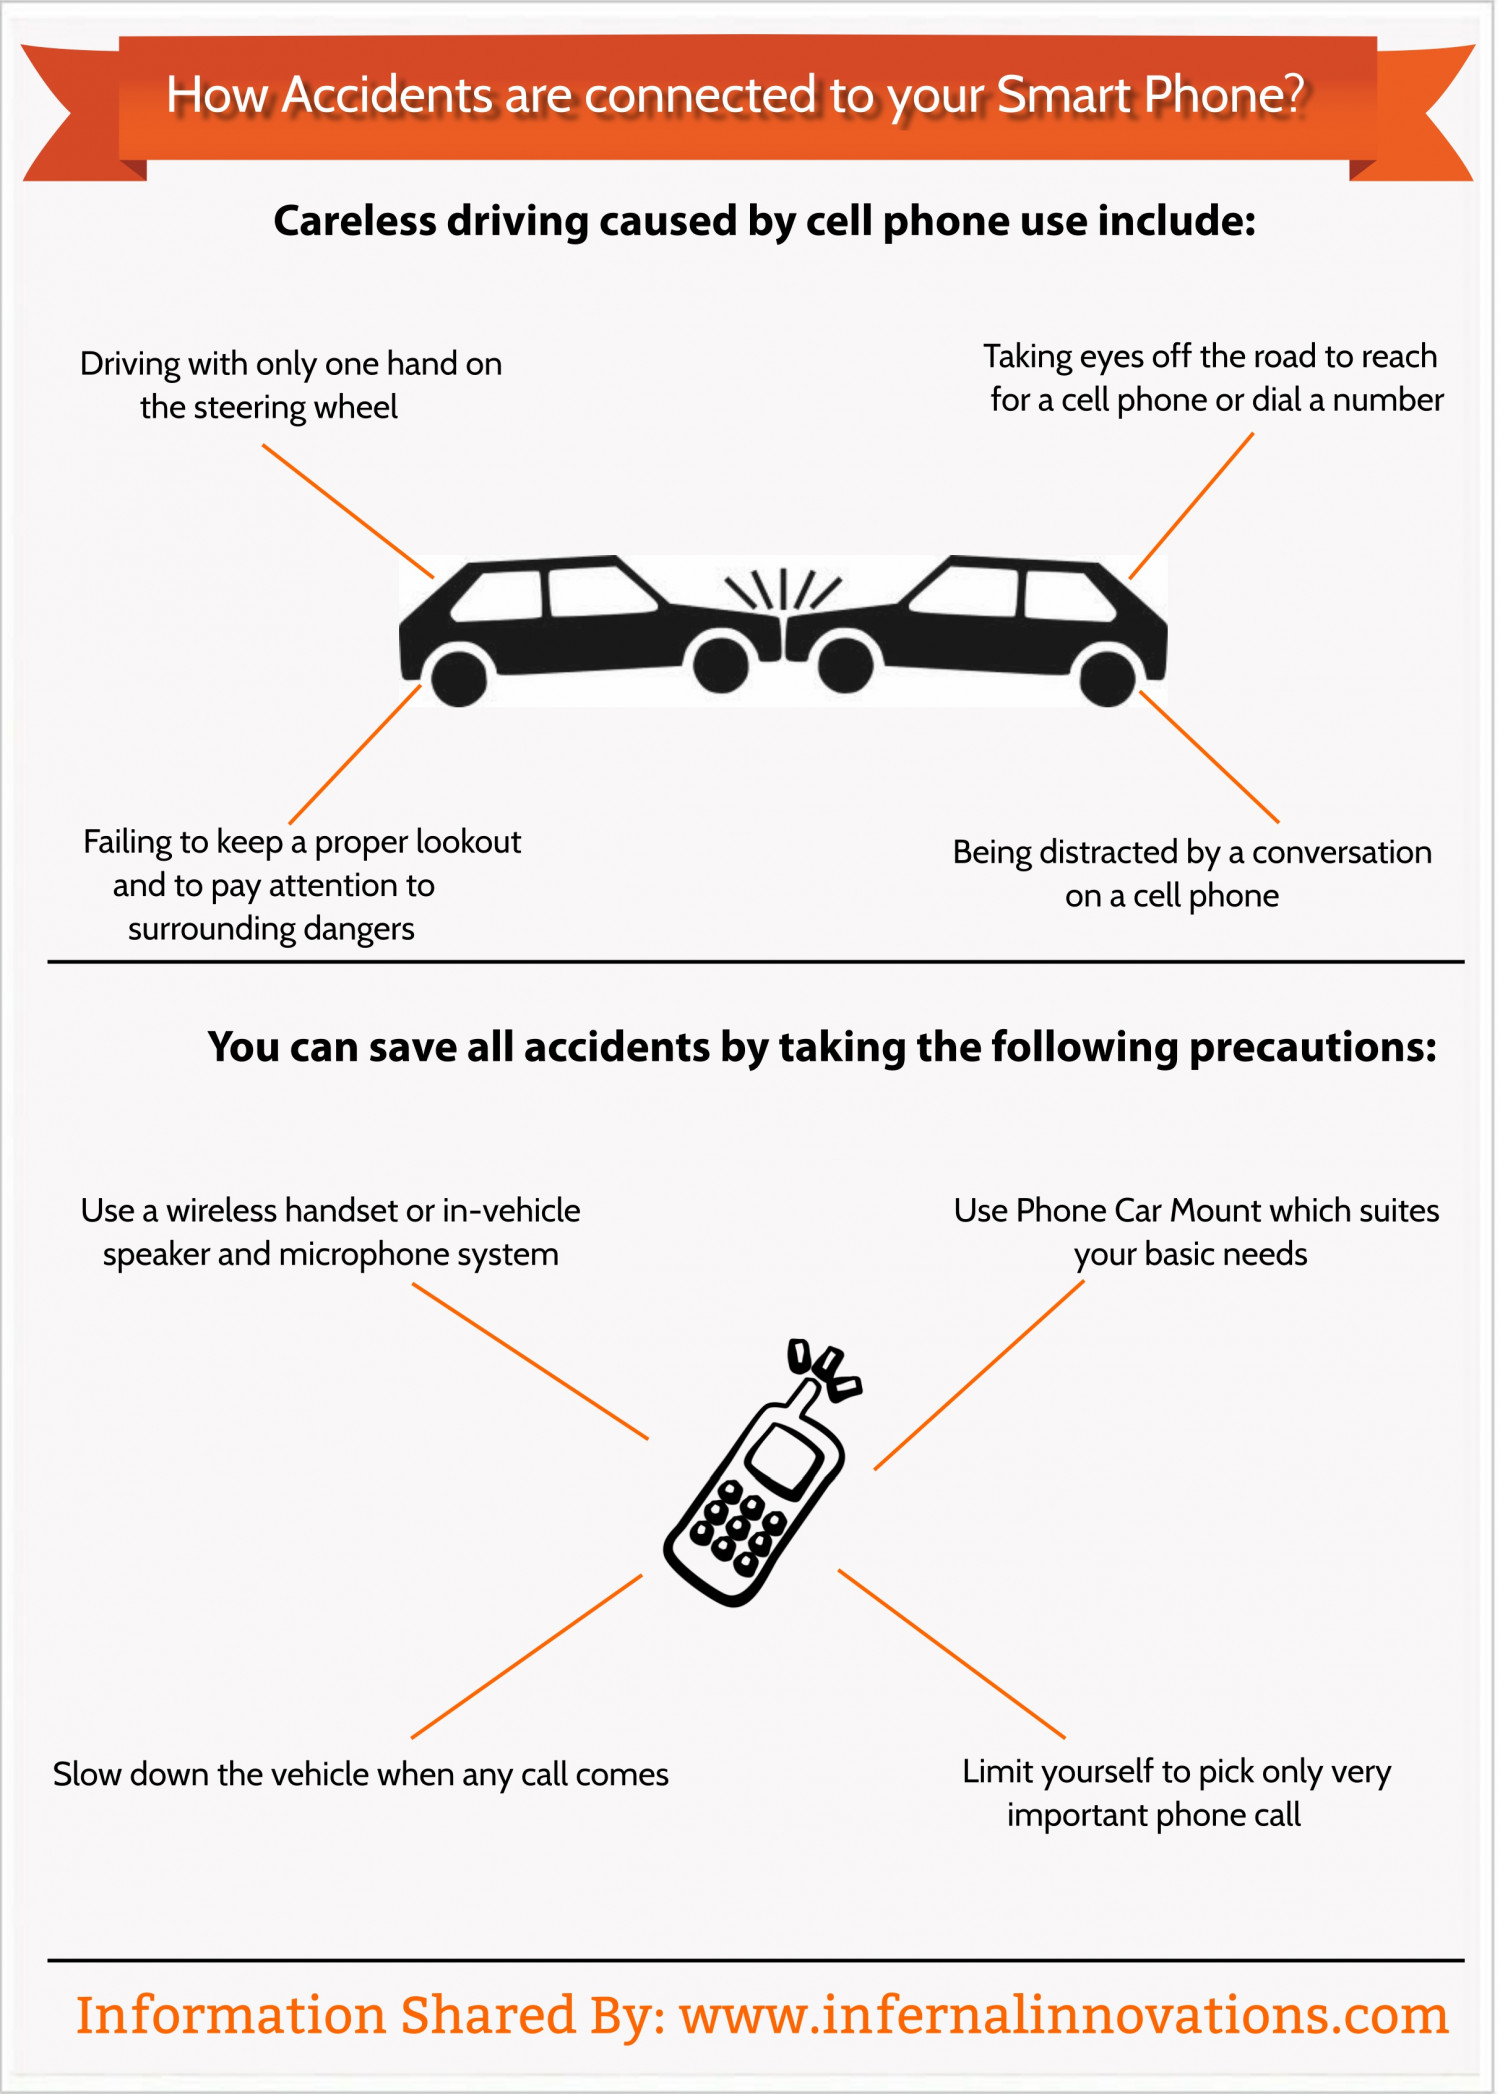 How Accidents are connected to your Smart Phone Infographic